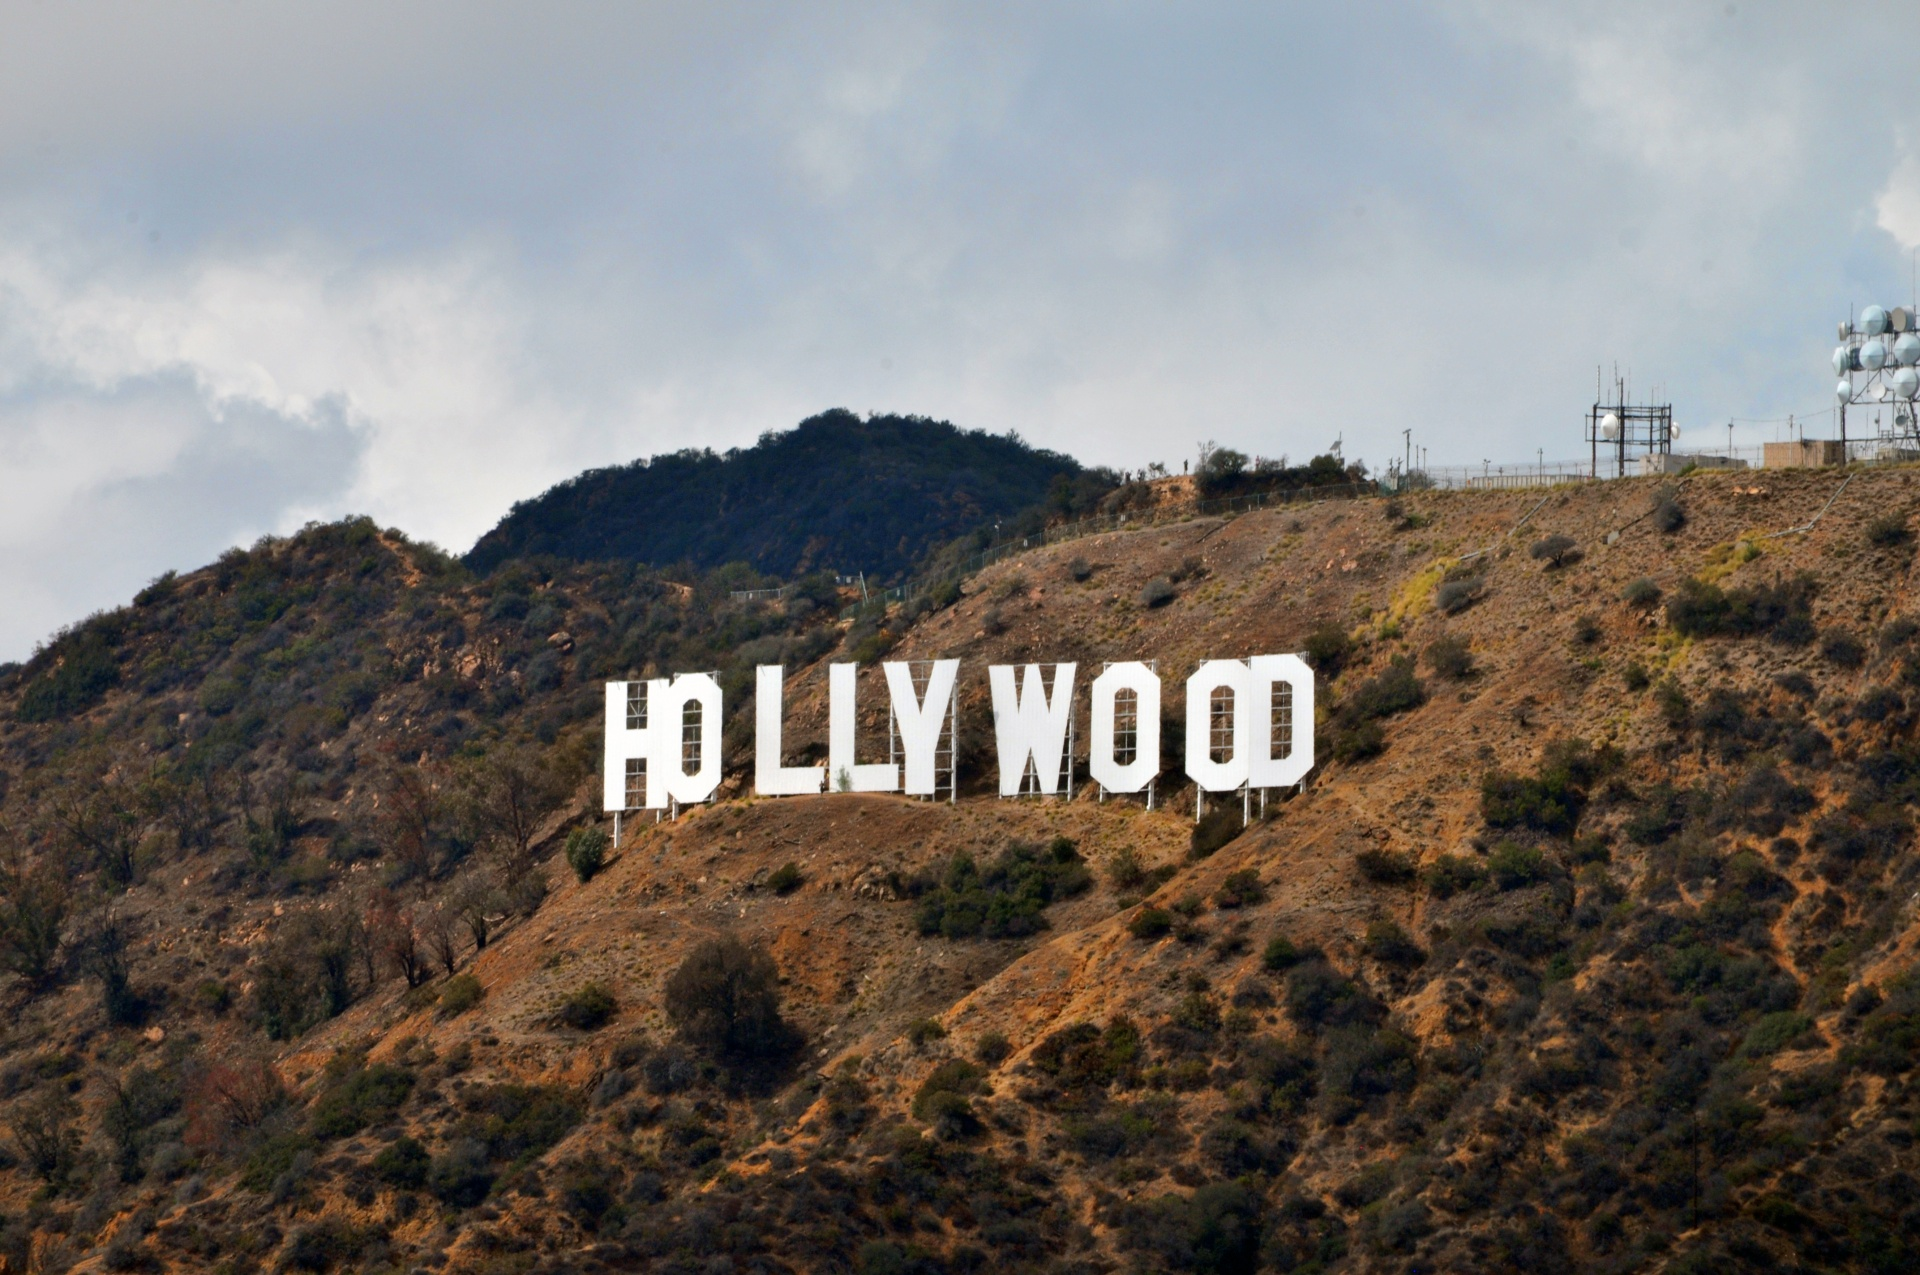 Hollywood is part of California's 28th congressional district